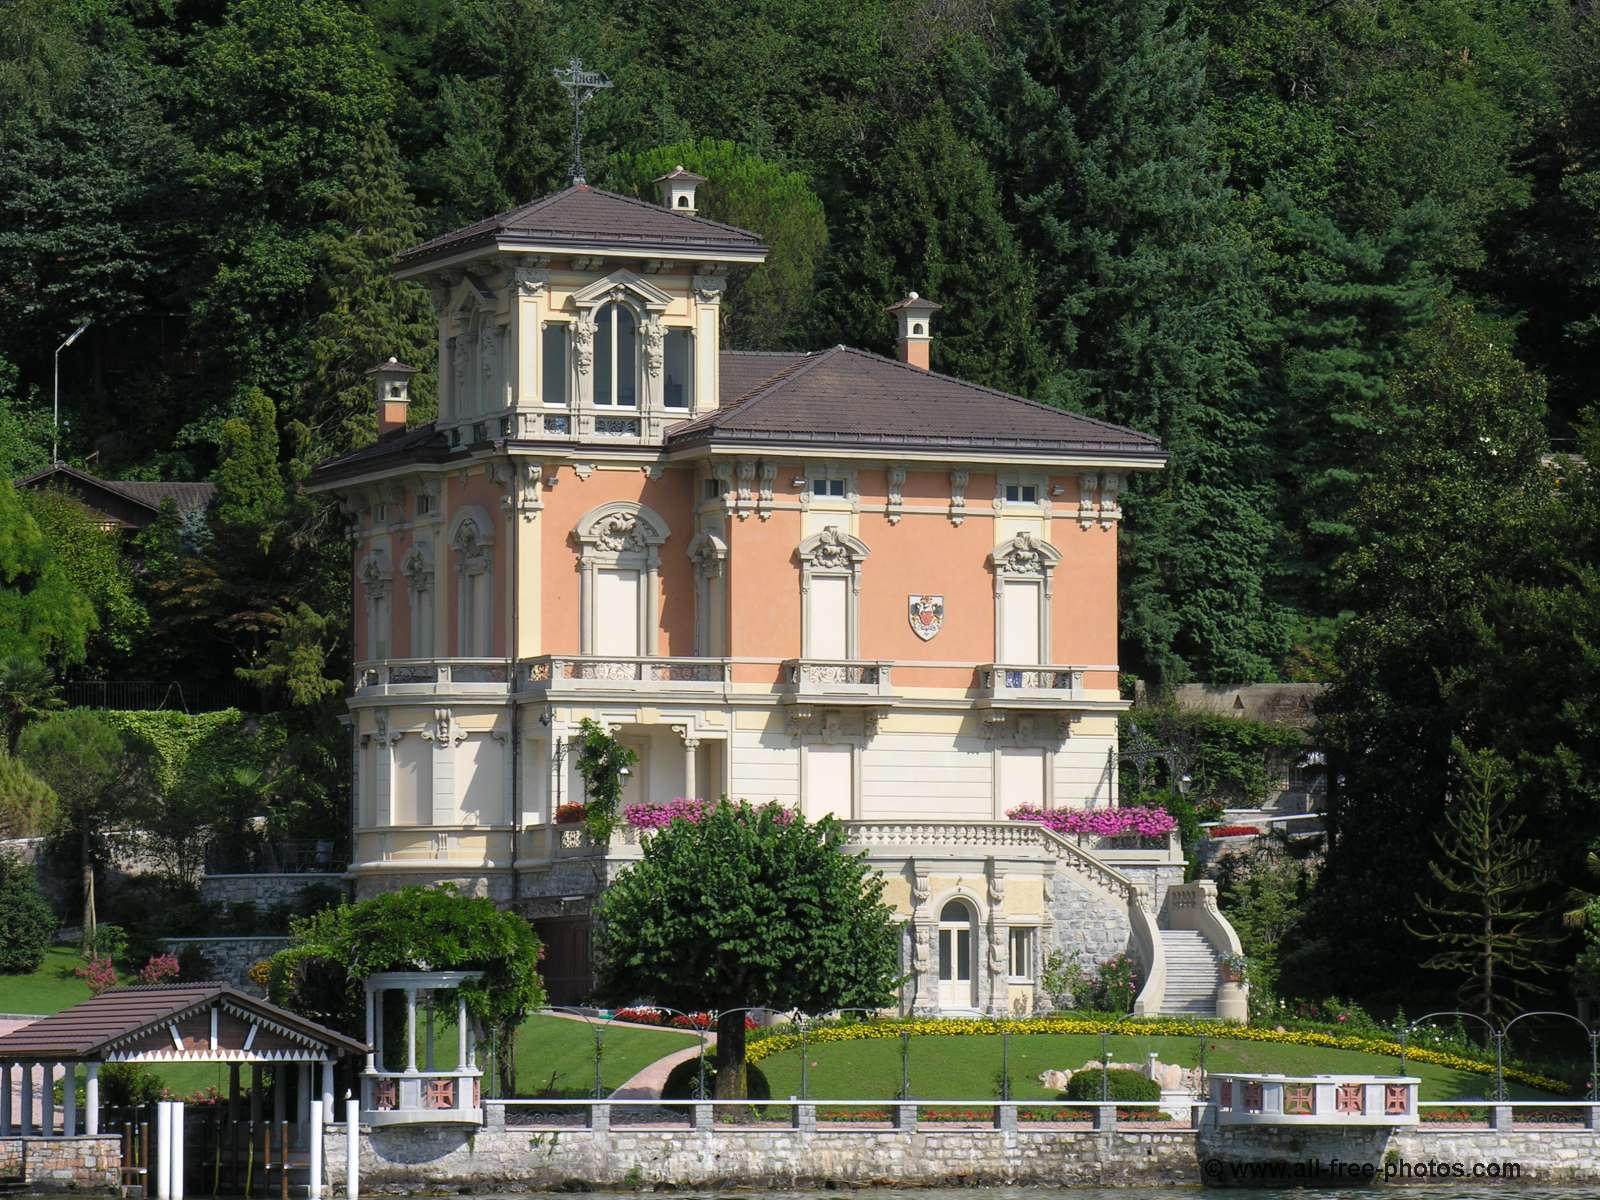 Villa - Lugano Lake - Switzerland